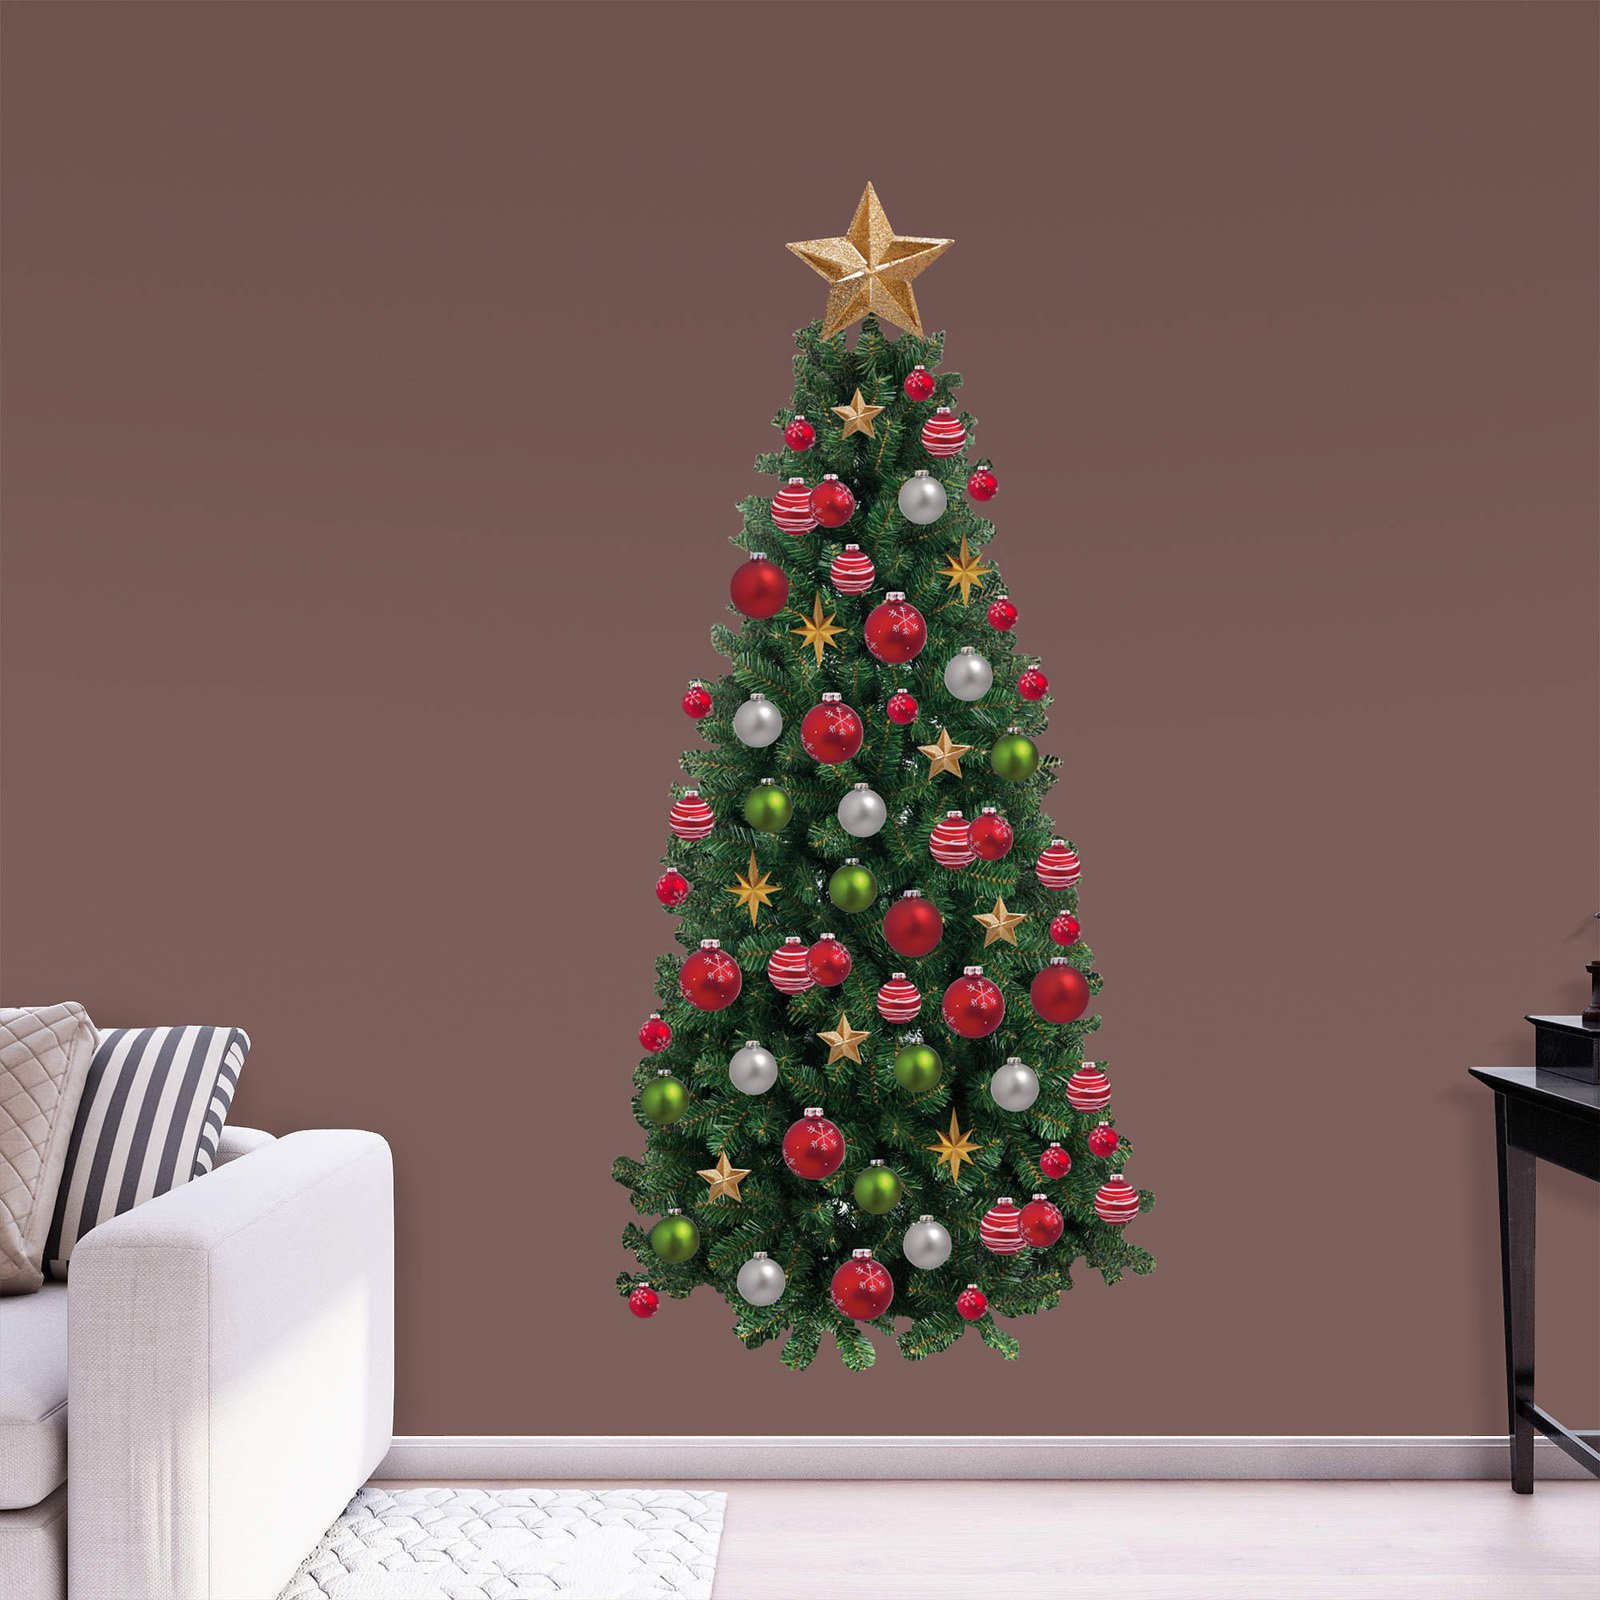 Fathead Christmas Tree Wall Decal : christmas tree wall decals - www.pureclipart.com